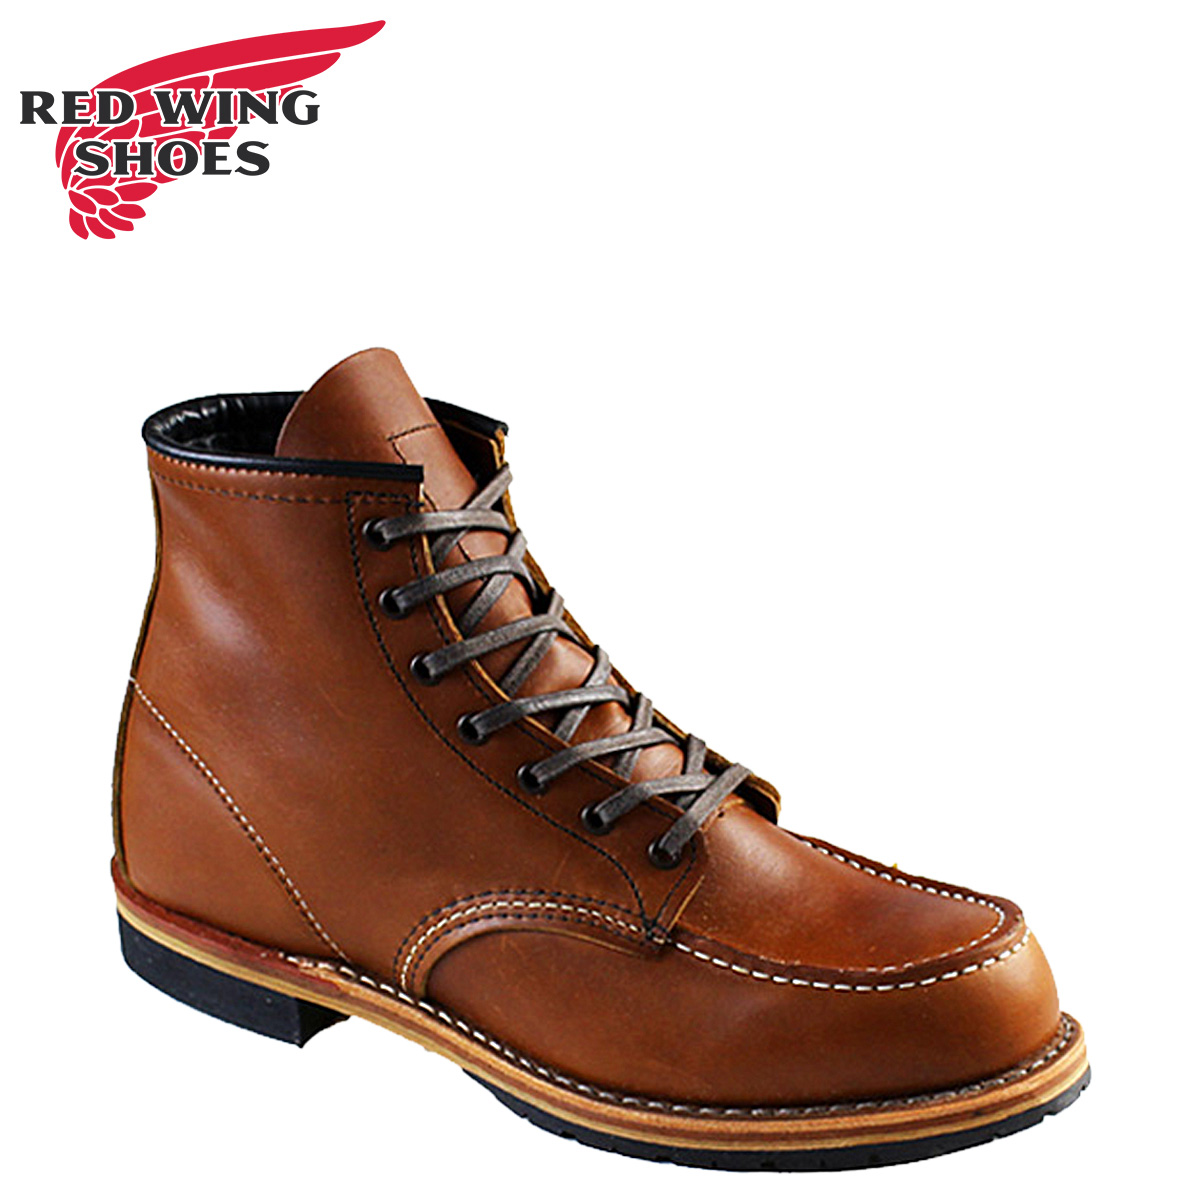 ALLSPORTS   SOLD OUT  Red Wing RED WING J CREW Beckman 6 inch ... 753e924103